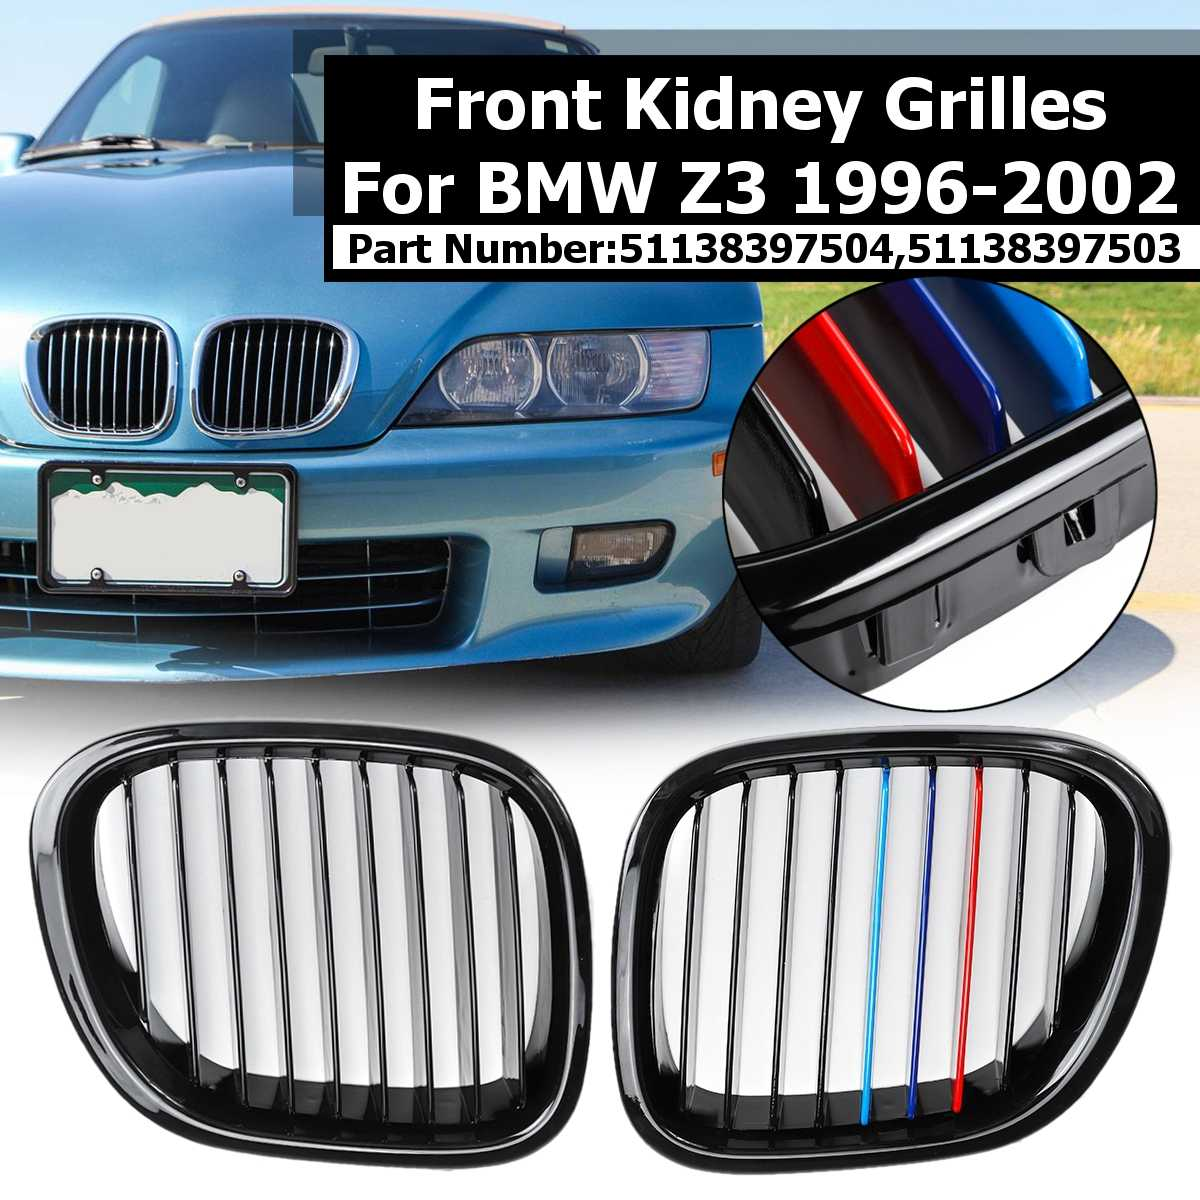 1 Pair Glossy Black&M-Color Car Front Kidney Grilles For BMW Z3 1996 1997 1998 1999 2000 2001 2002 Replacement Racing Grilles